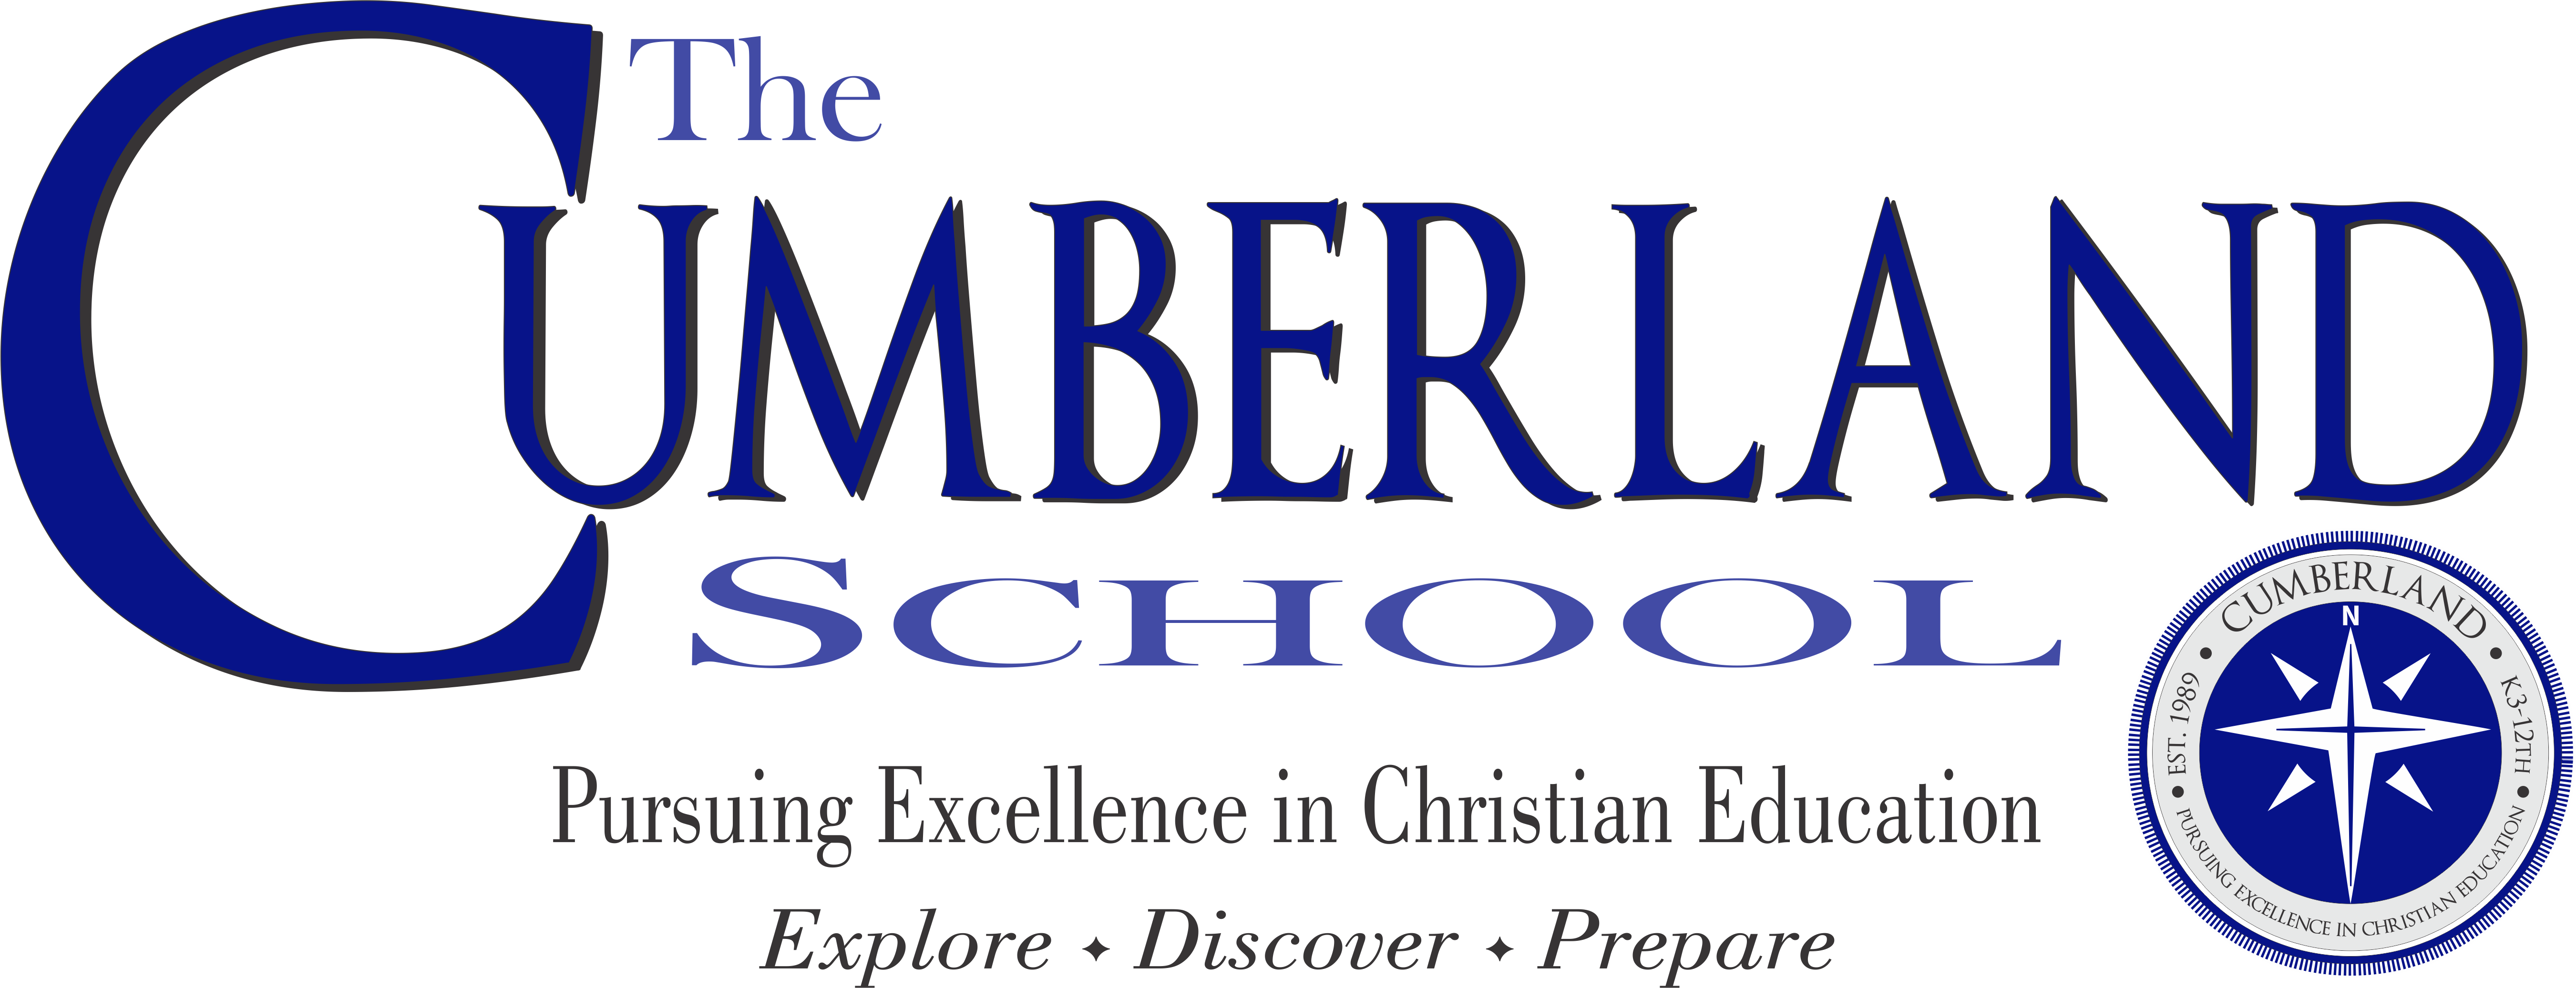 the-cumberland-school-banner.png